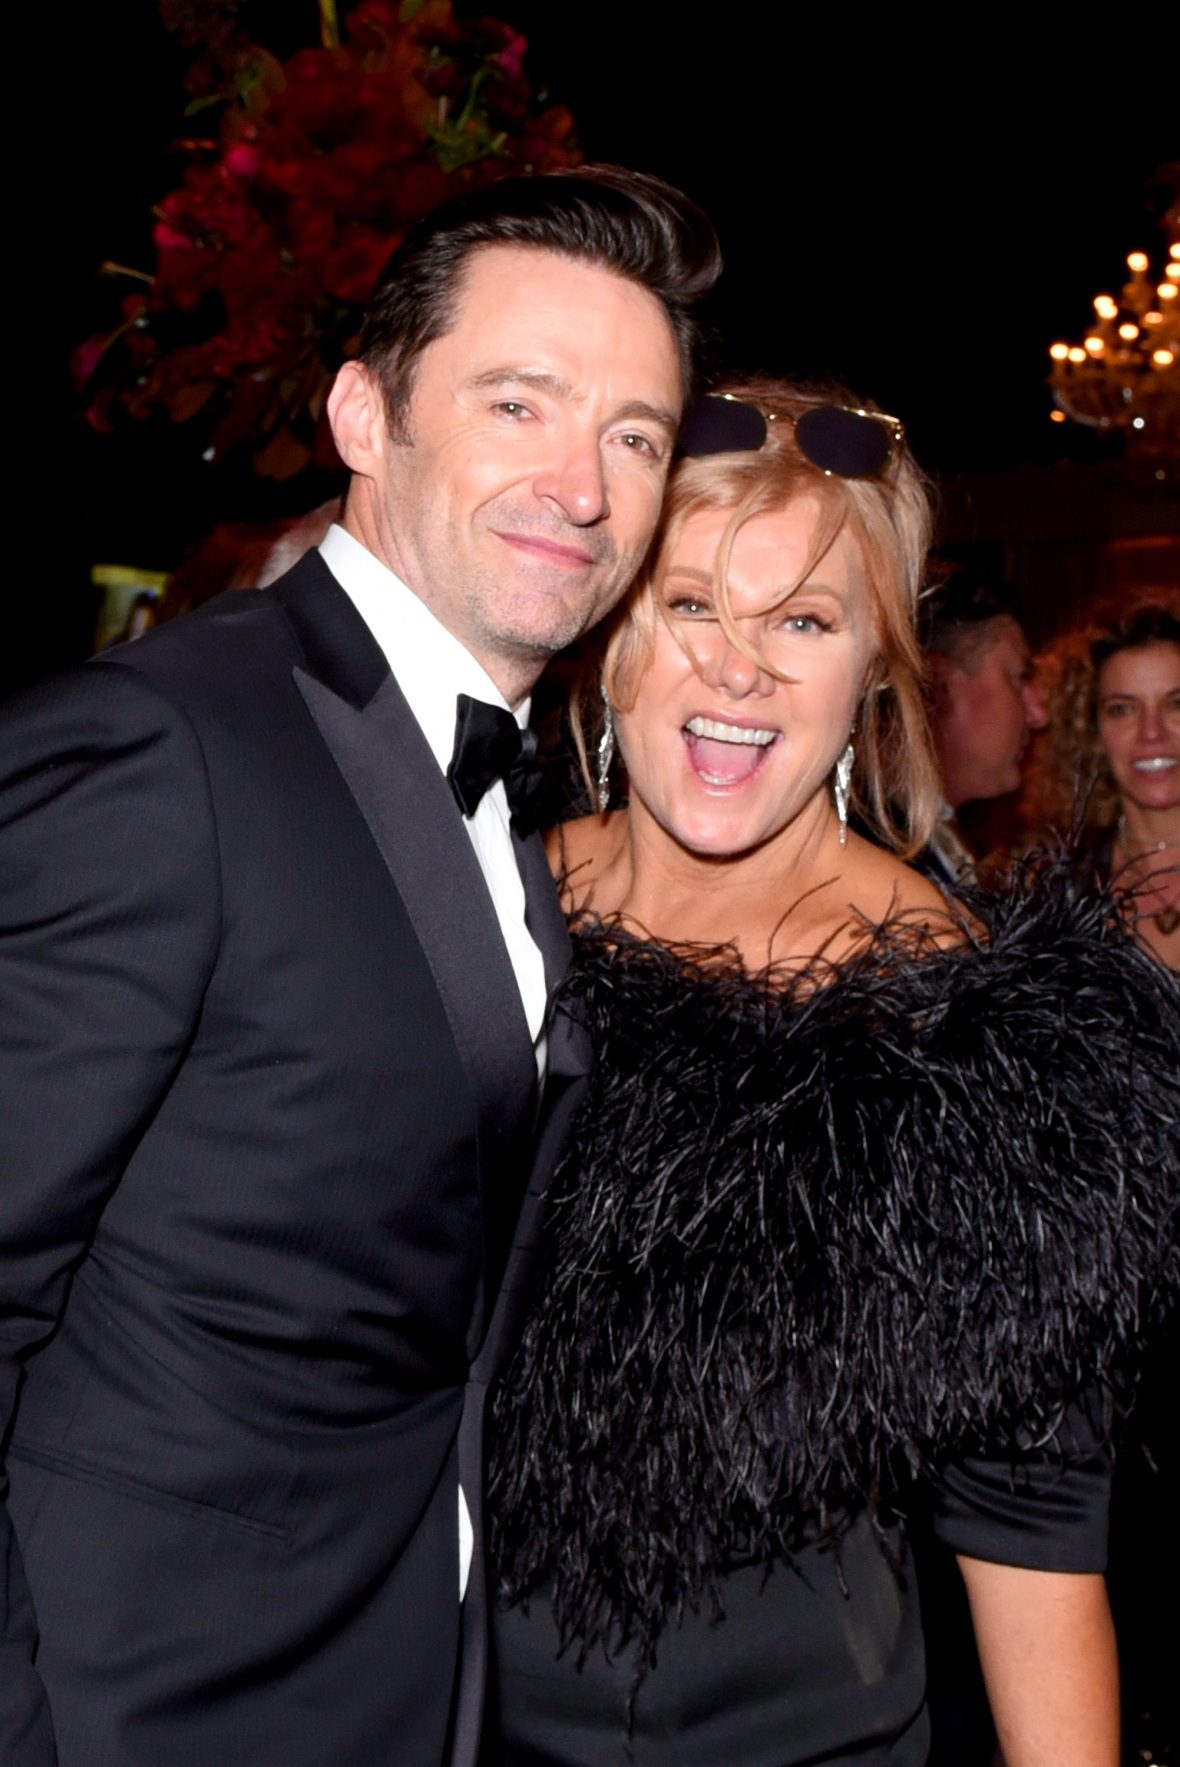 hugh jackman and his wife deborah getty images